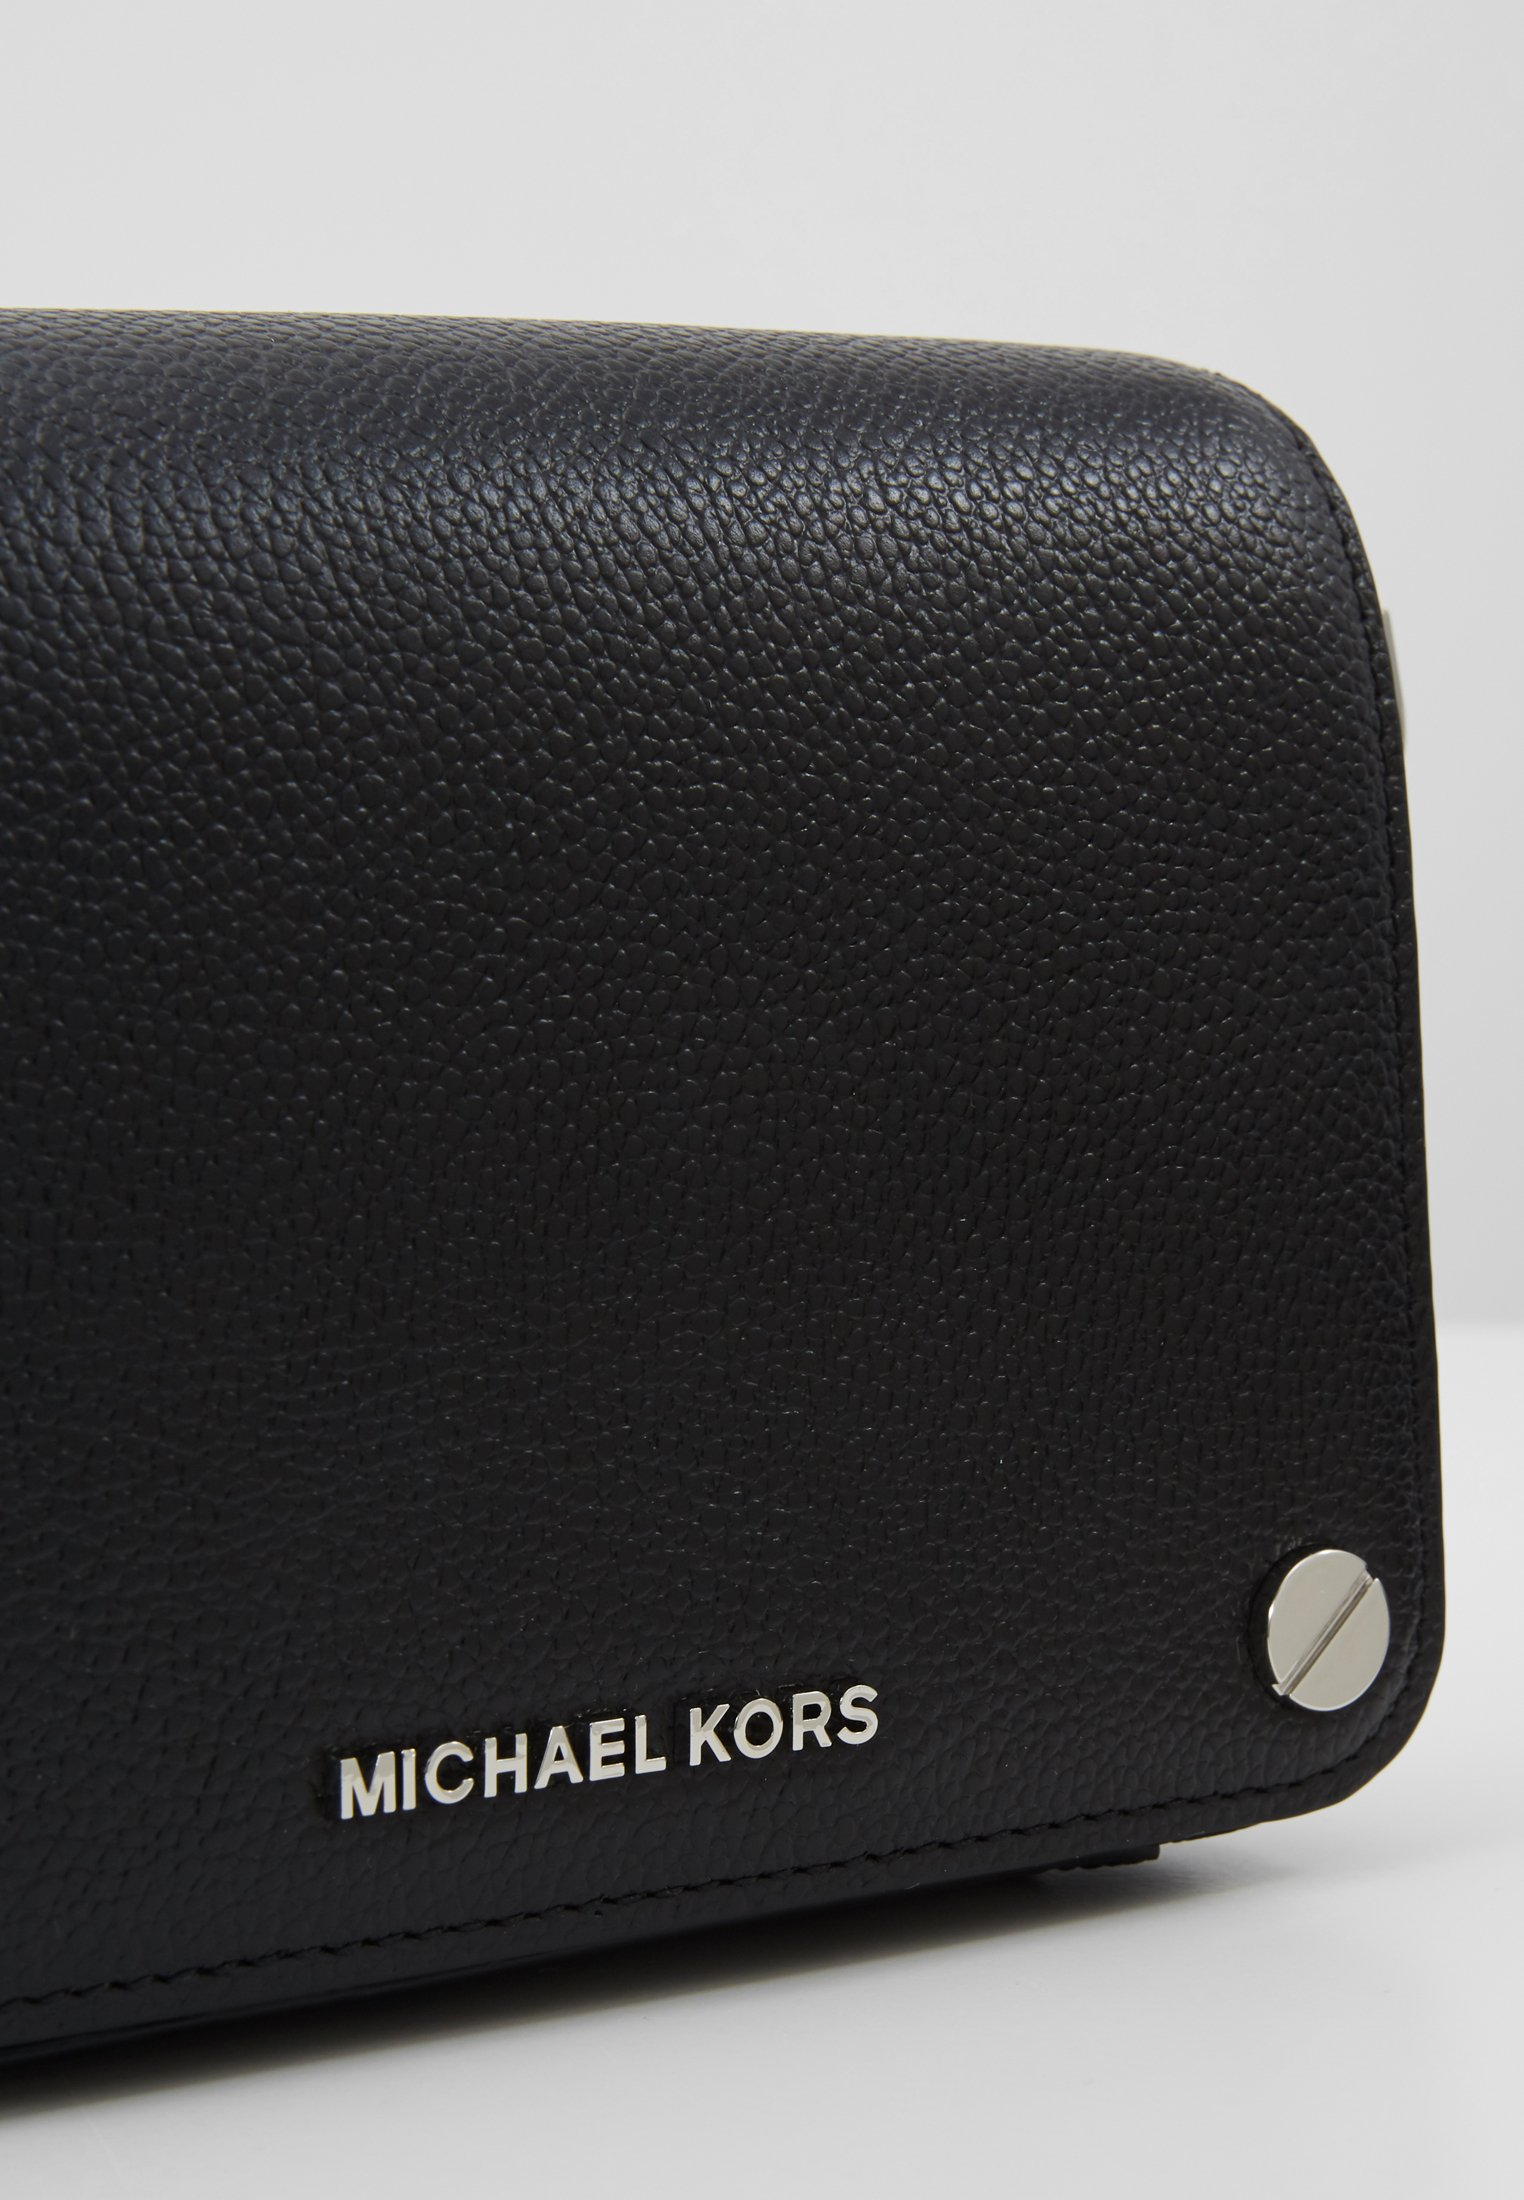 Buy Collections Accessories MICHAEL Michael Kors JET SET FULL FLAP XBODY MERCER PEBBLE SHINY Across body bag black 5uV2lhaIS 4KWQyiec7